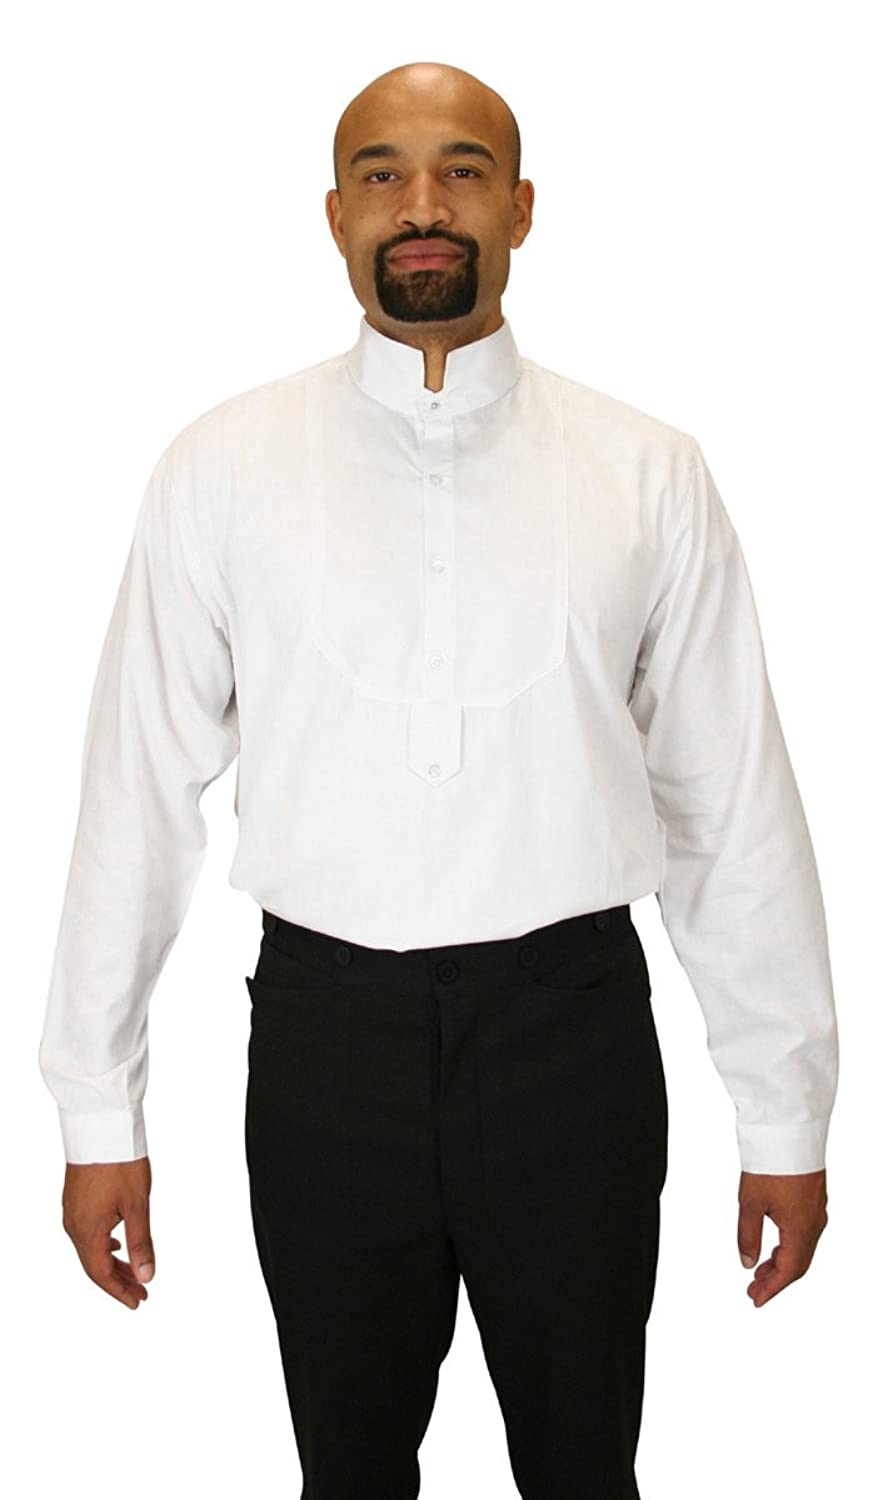 Victorian Men's Shirts- Wingtip, Gambler, Bib, Collarless Mens Victorian Collar Dress Shirt $59.95 AT vintagedancer.com